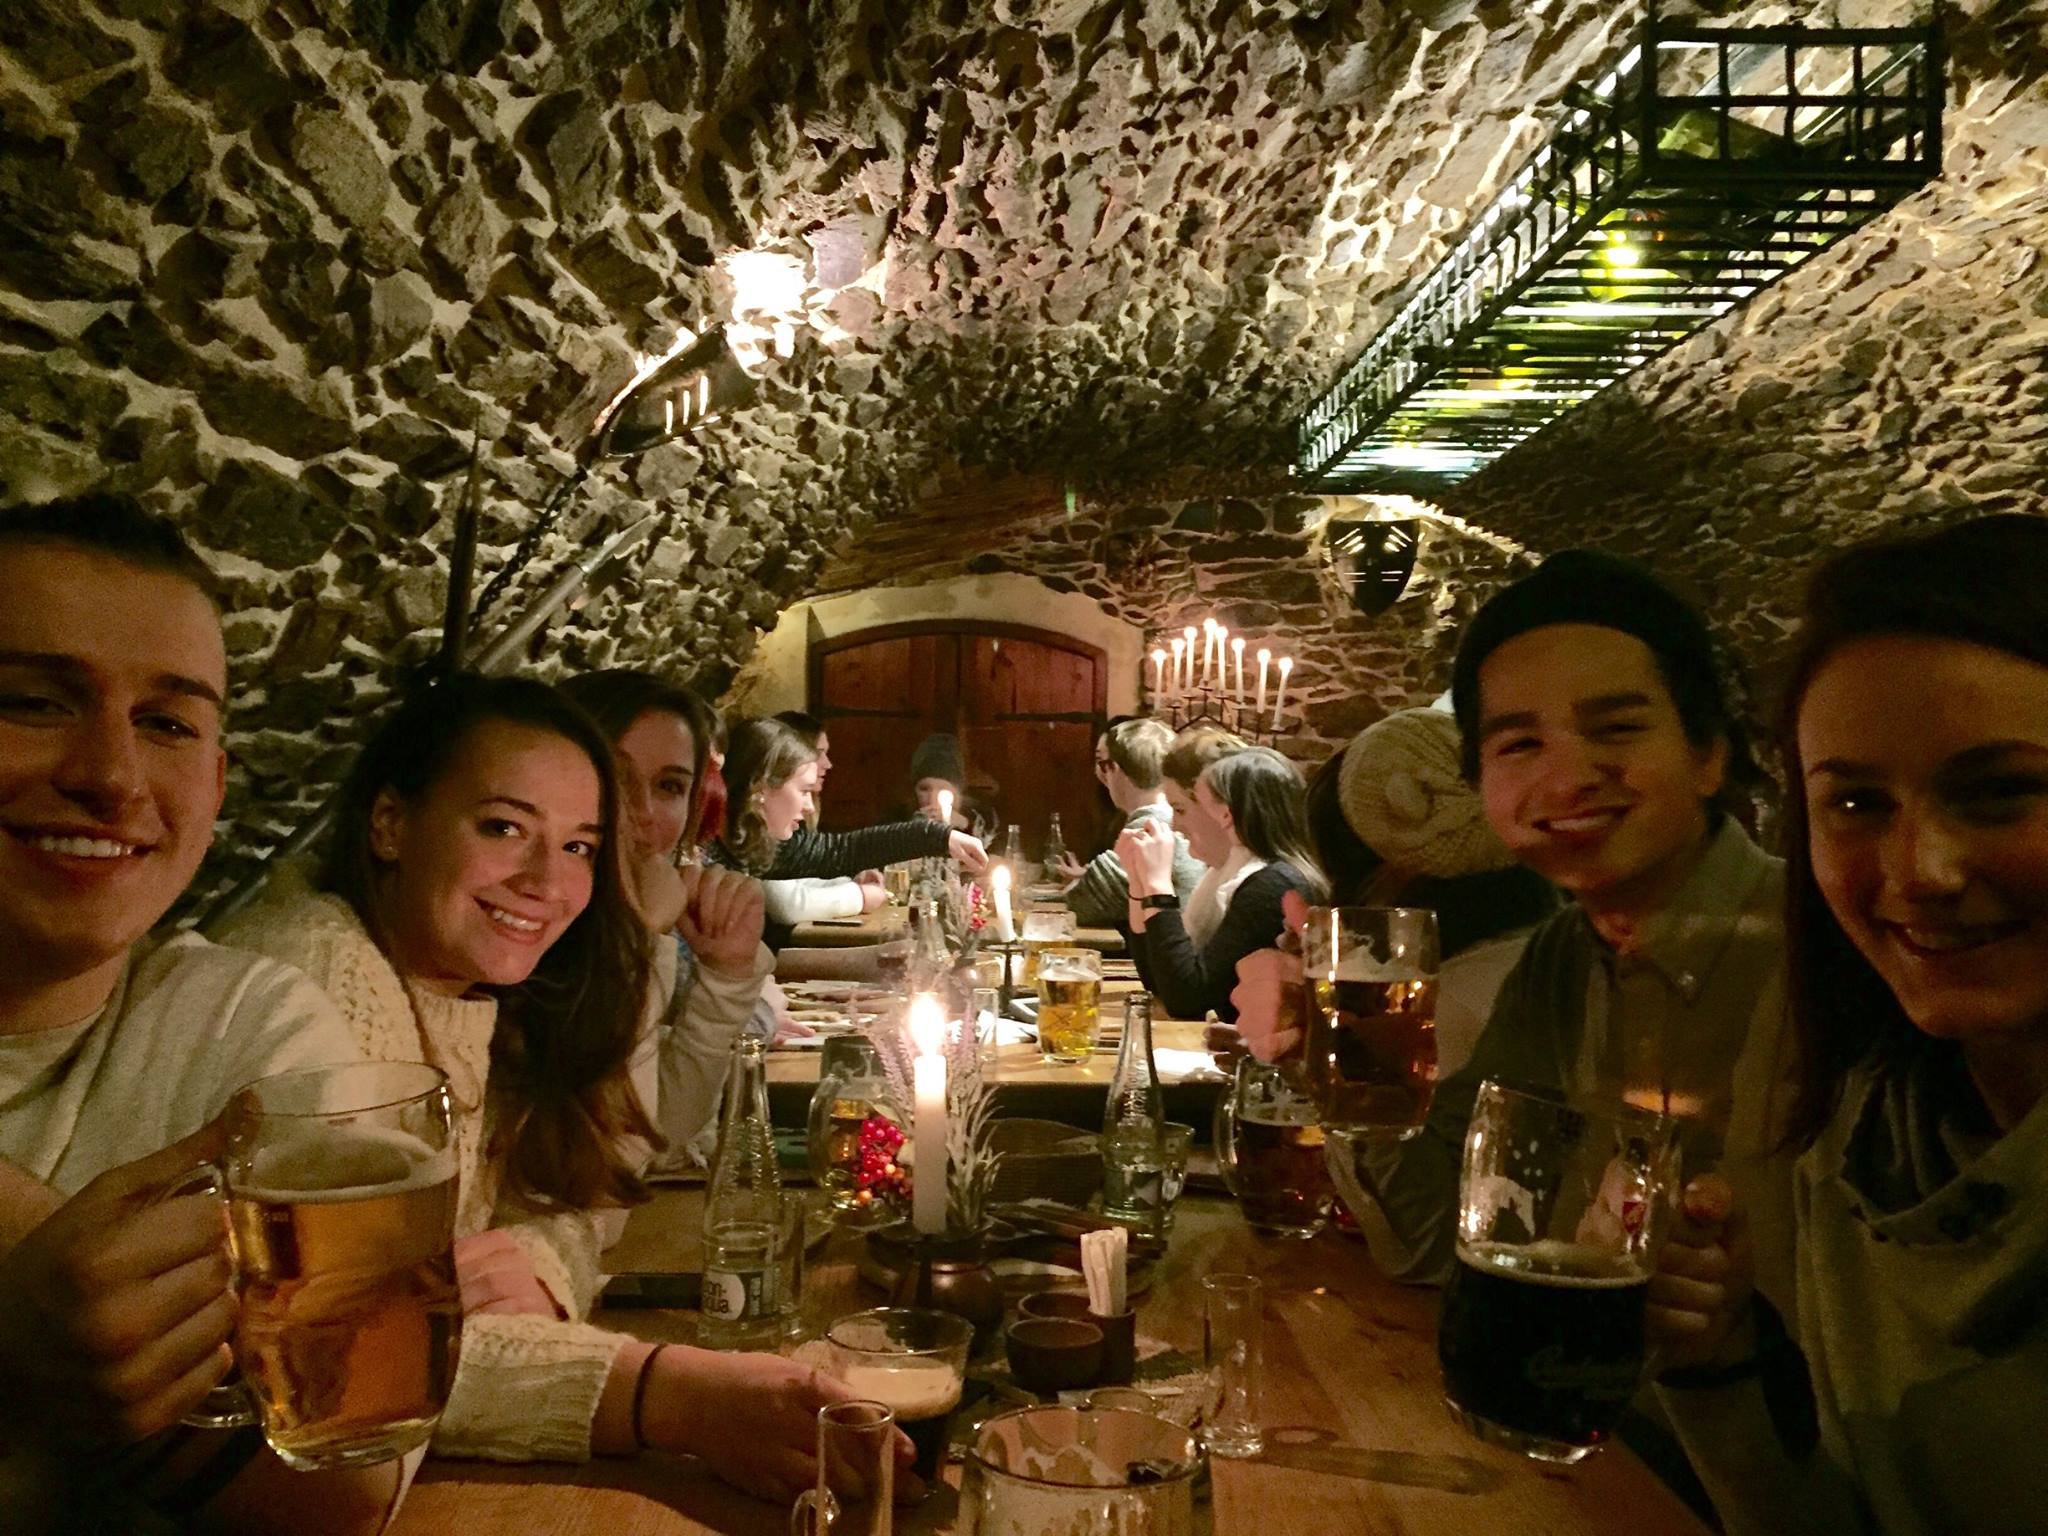 Here we are eating at the Medieval Restaurant. The meal basically consisted of every type of meat, roasted over an open fire and it was absolutely delicious.